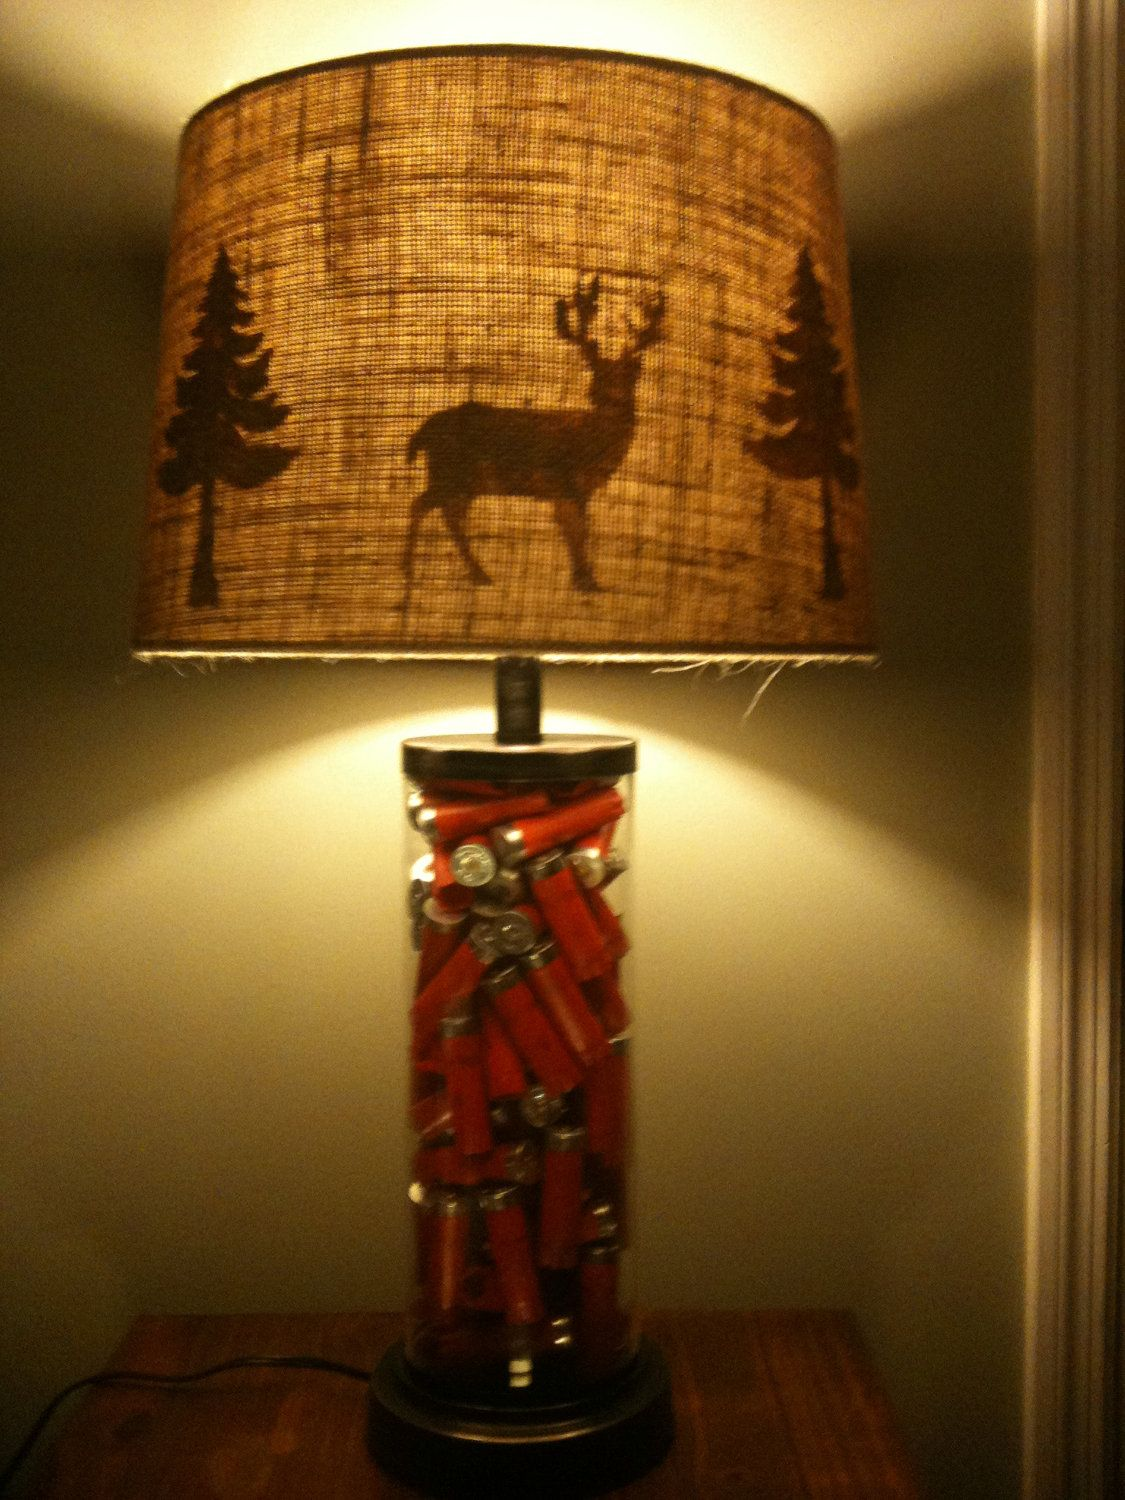 Make a shade of picturesnters deer lamp with shotgun shells make a shade of picturesnters deer lamp with shotgun shells 10000 mozeypictures Gallery